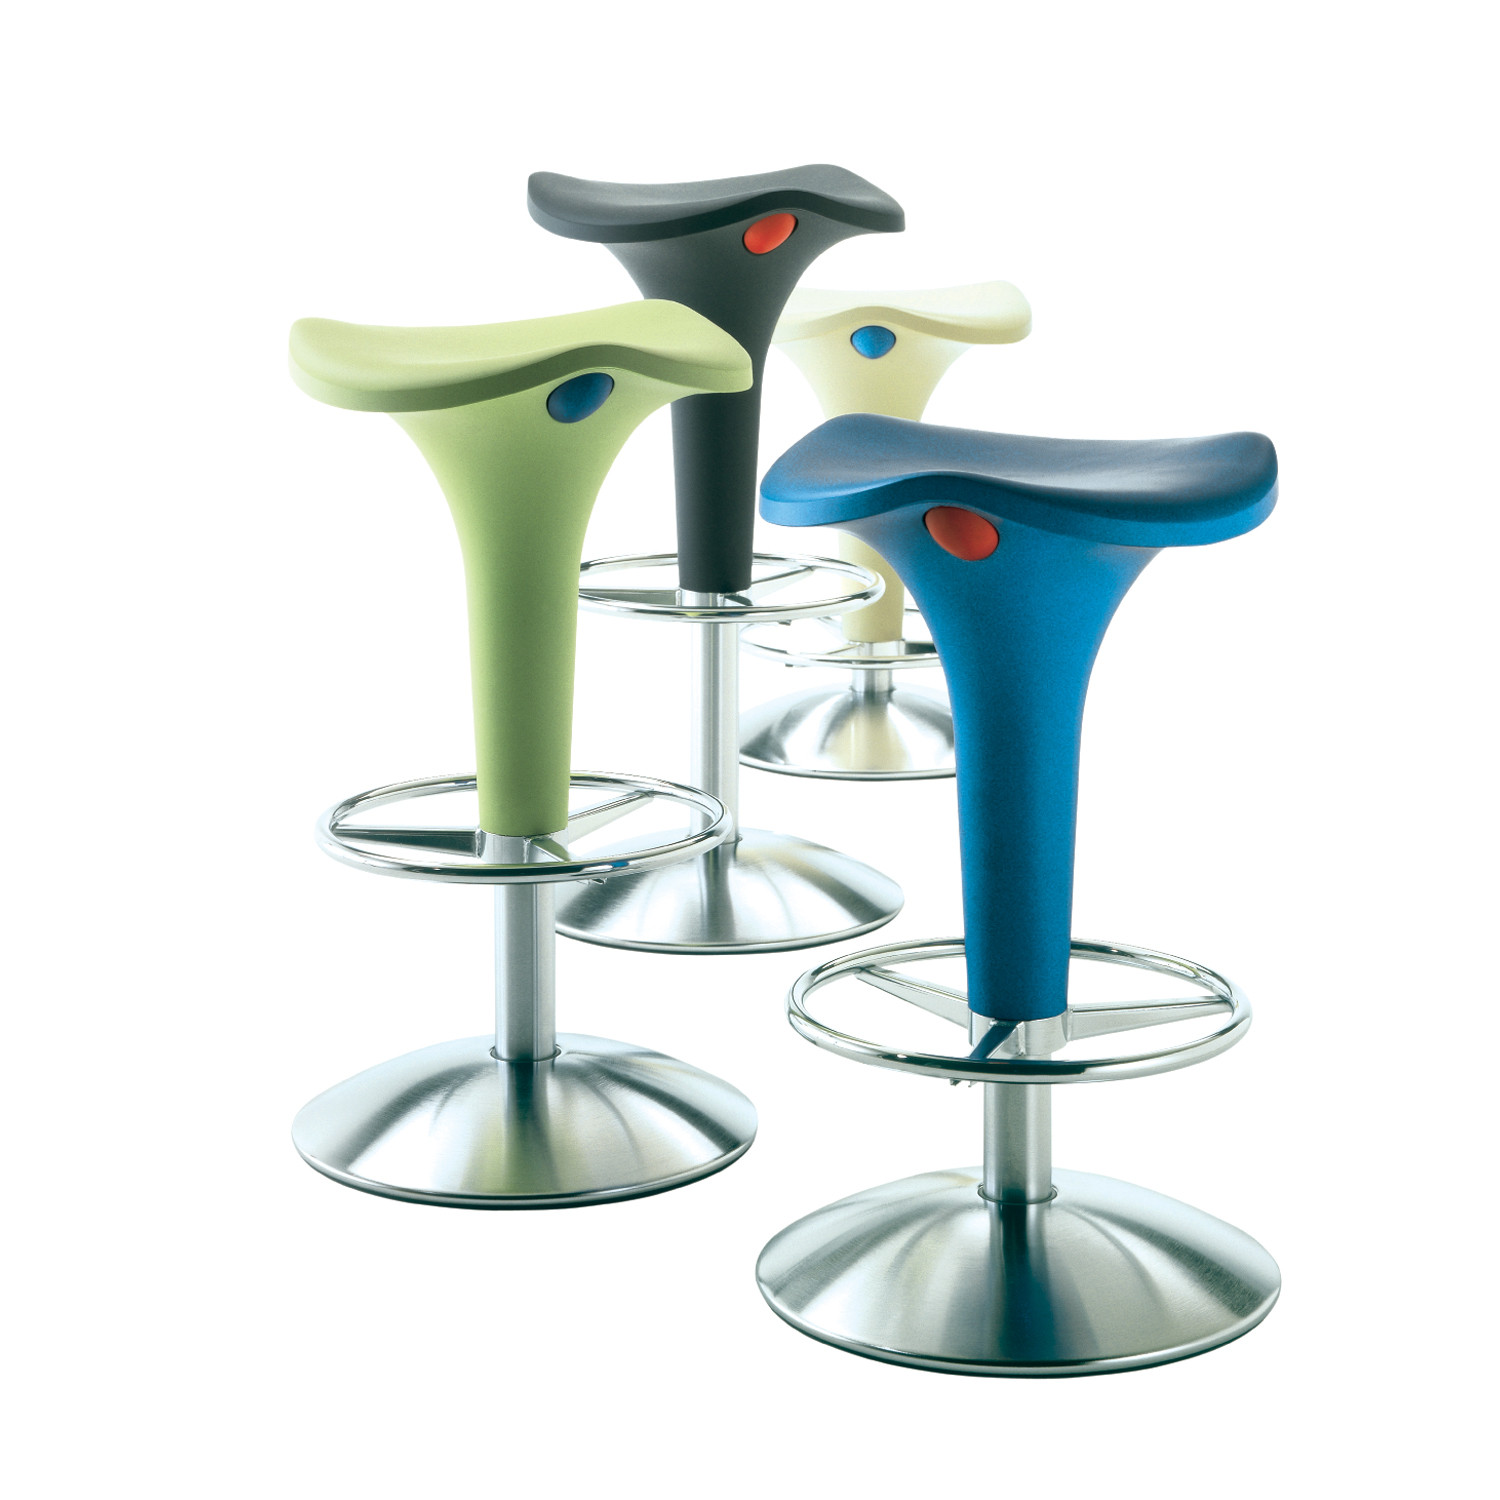 Zanzibar Bar Stool Contemporary Stools Apres Furniture : zanzibar bar stool 04 from www.apresfurniture.co.uk size 1500 x 1500 jpeg 172kB